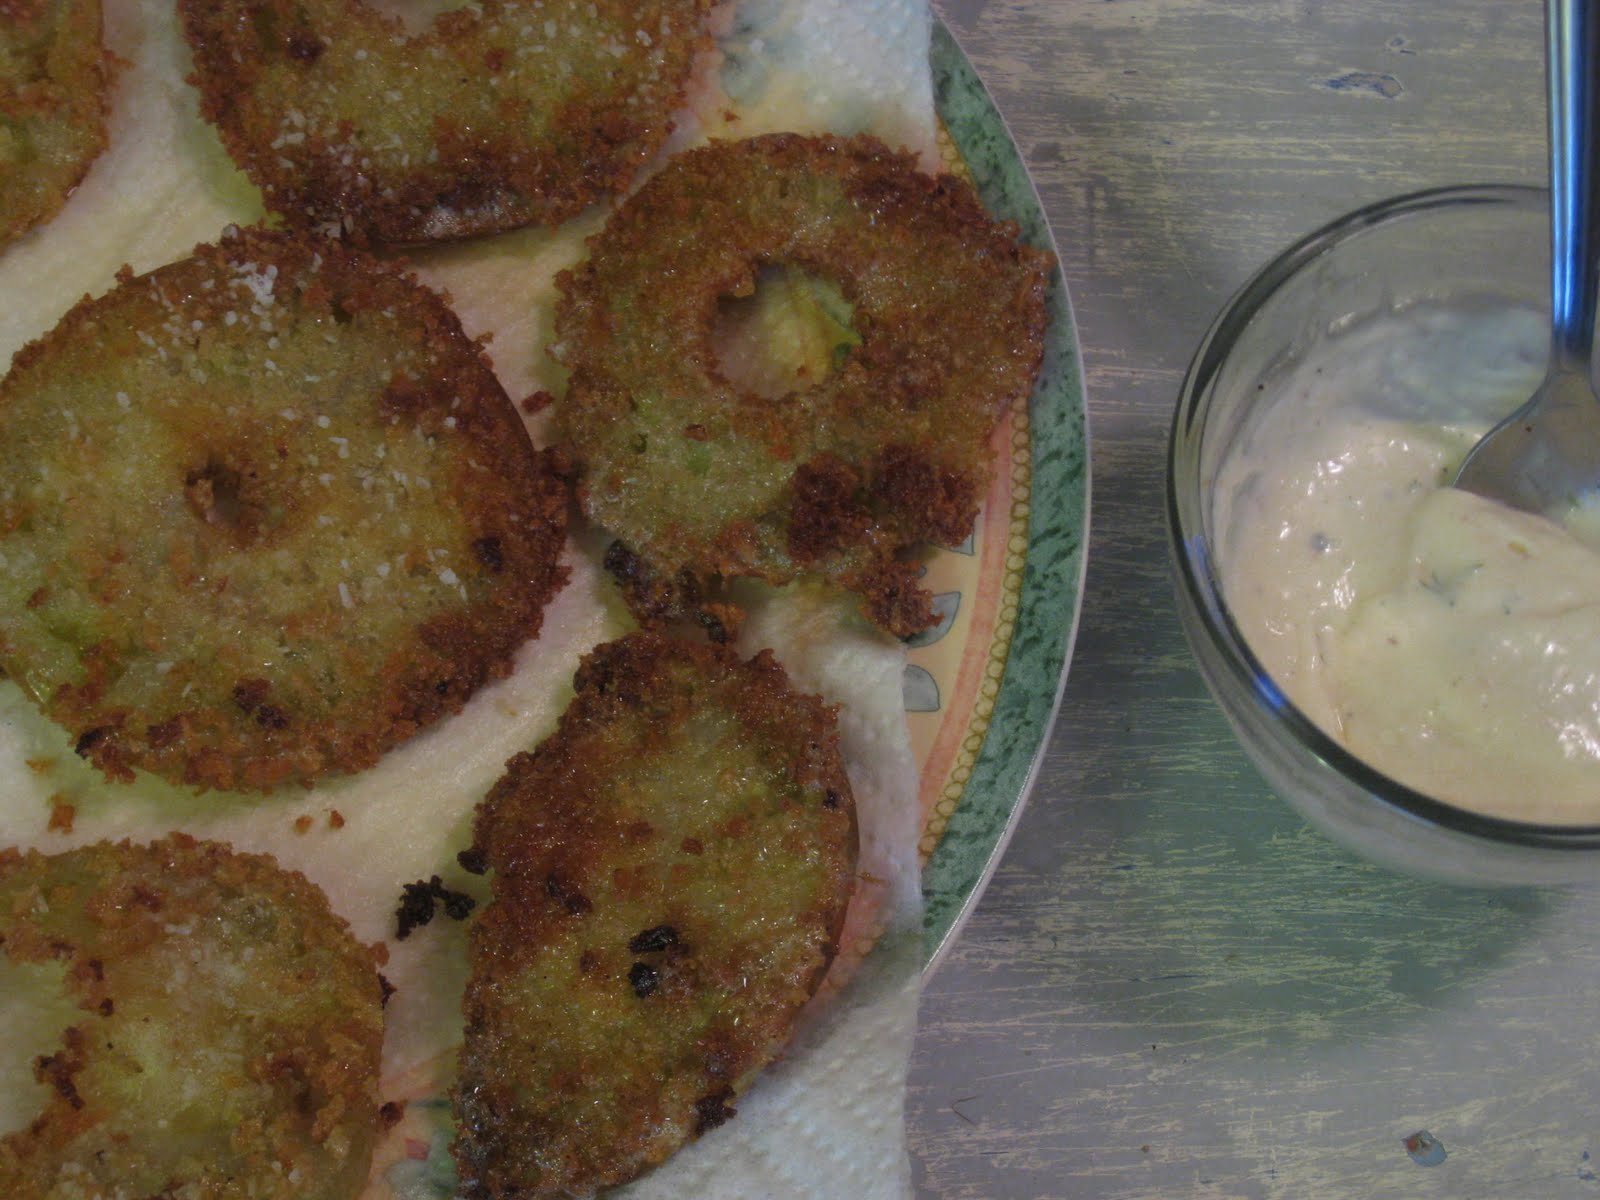 Panko-Fried Green Tomatoes with Dill, Horseradish and Mayonnaise Dip